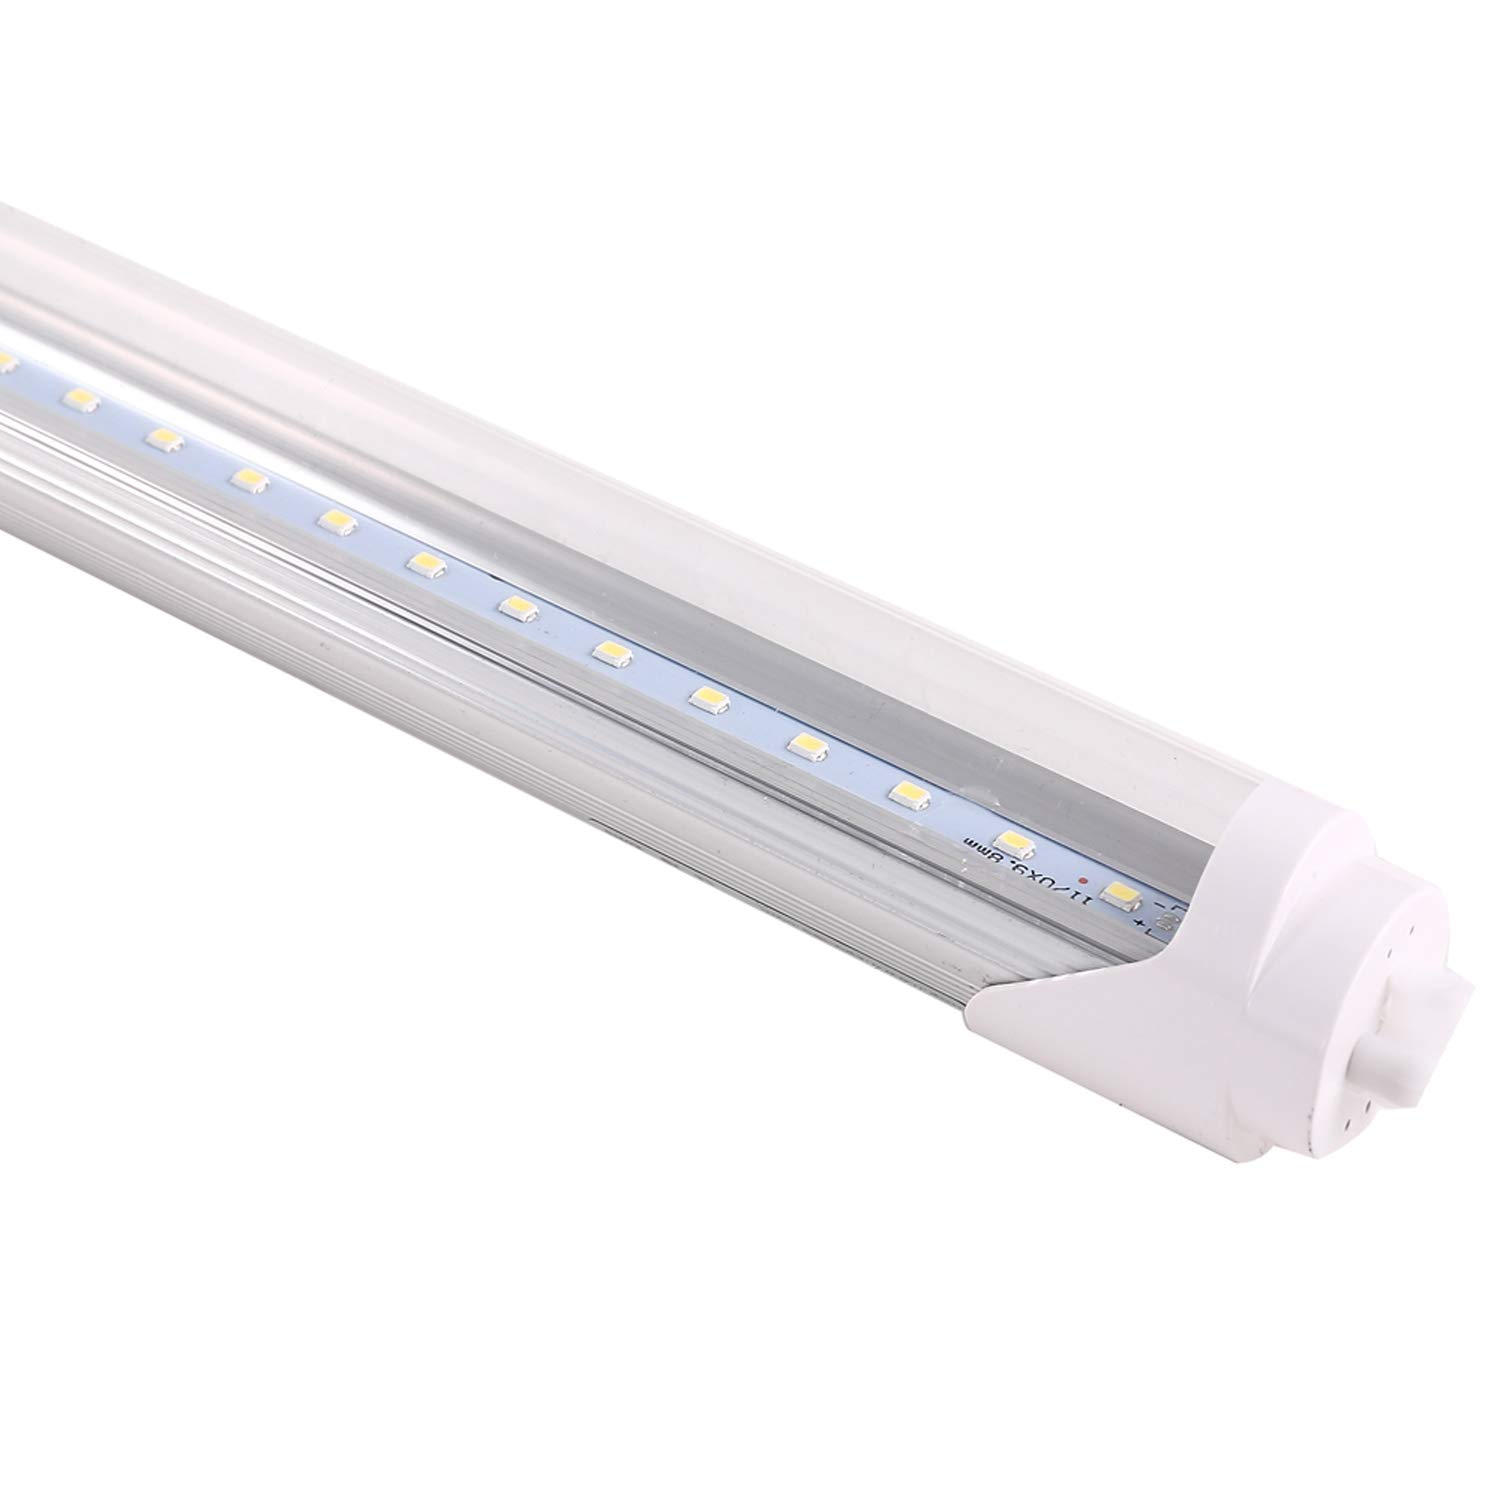 4000K 18W 25-Pack 85-265VAC G13 Lighting Fixtures Daylight 110V 277V Double-Ended Power 40W CFL Equivalent 4ft Clear Cover T8 LED Shop Light Tube Bypass Ballast